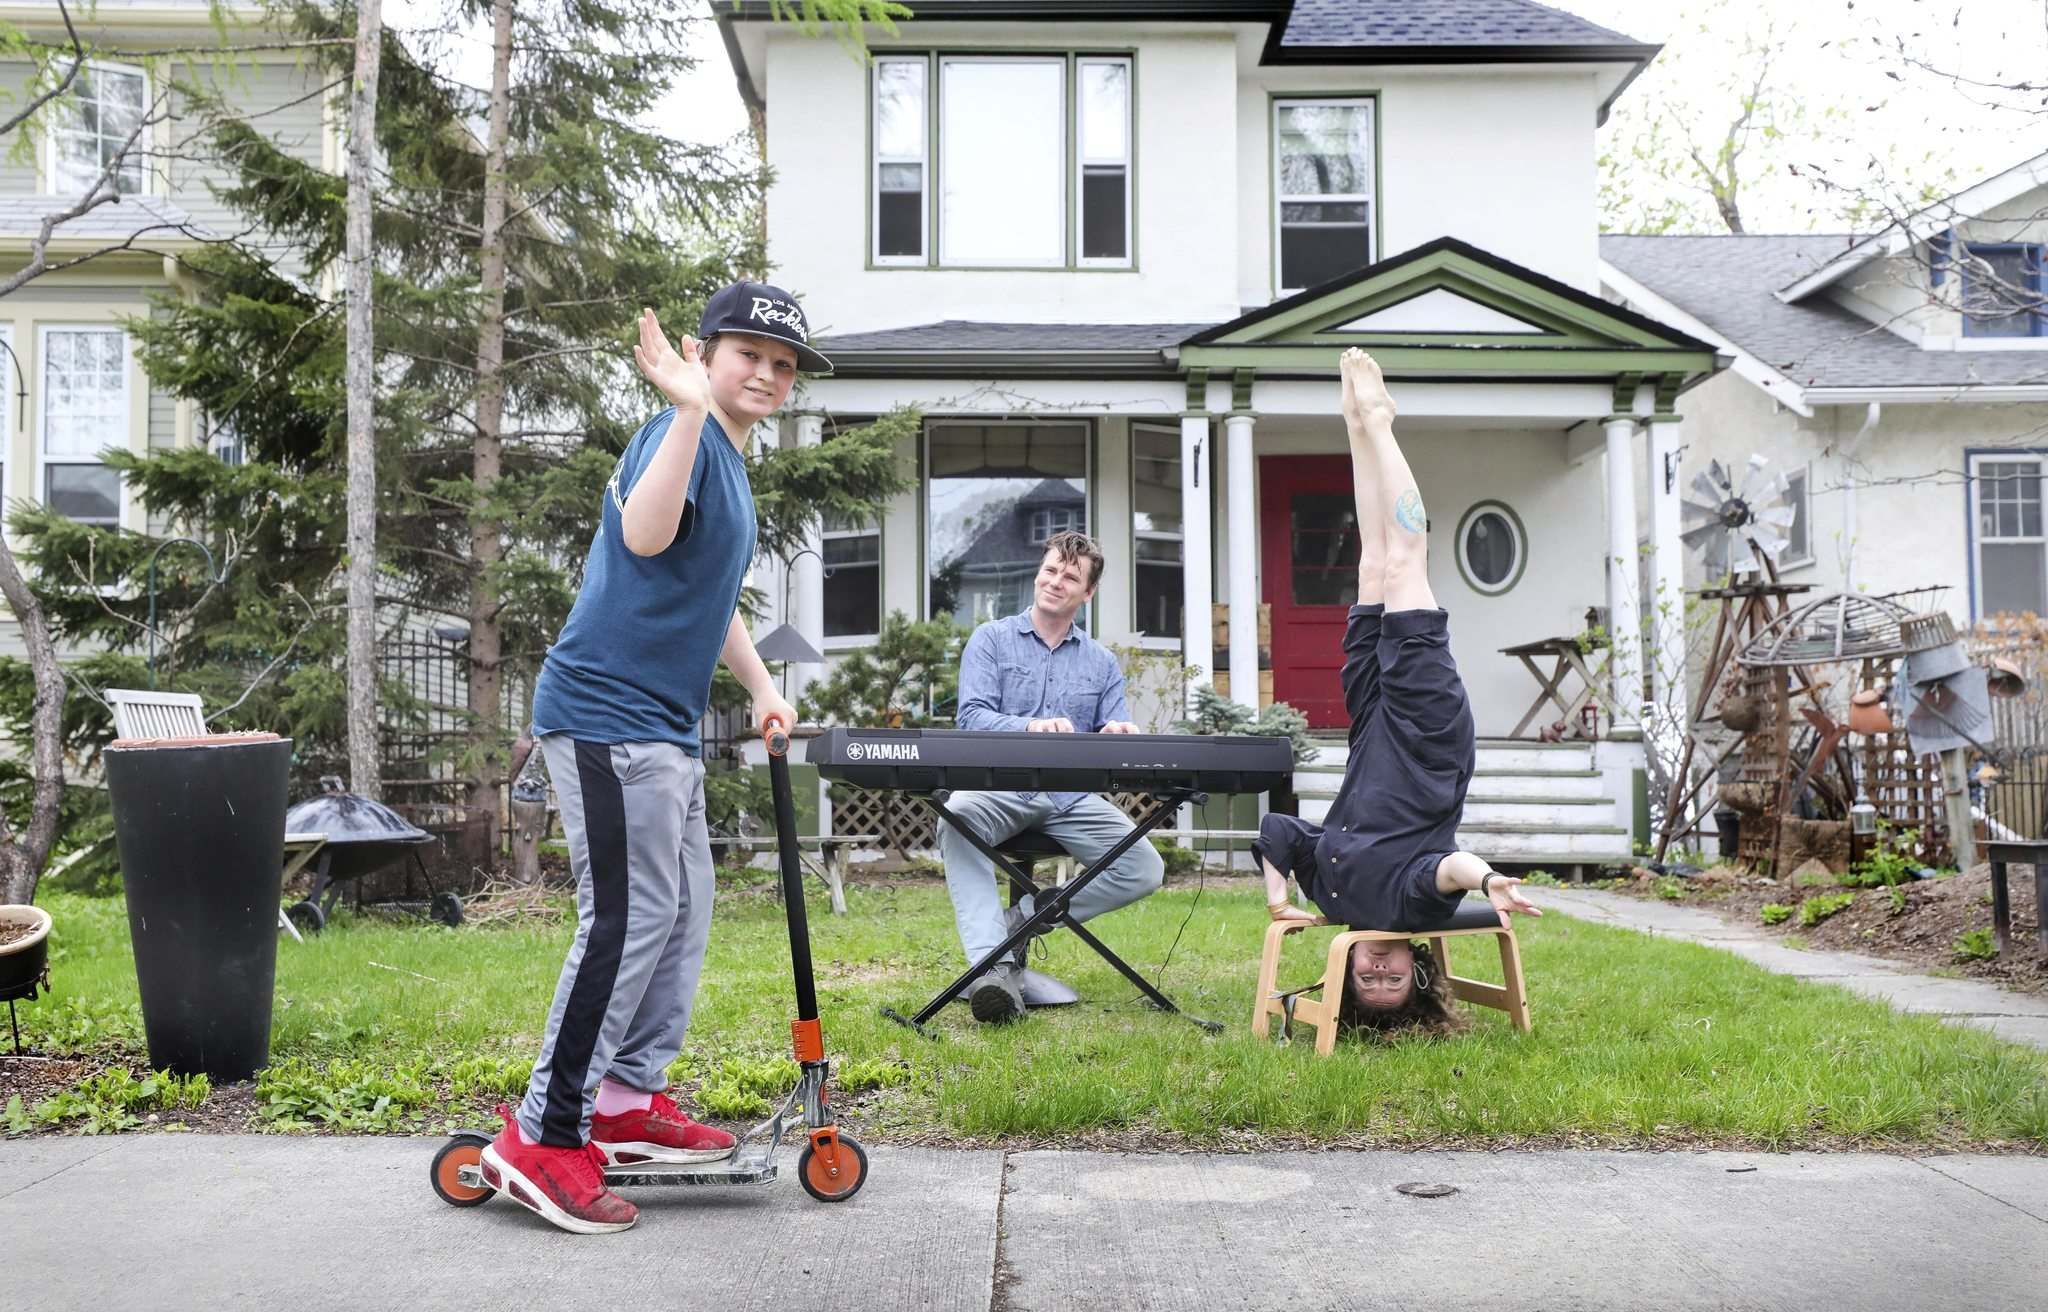 </p><p>RUTH BONNEVILLE / WINNIPEG FREE PRESS </p><p>Zsigunnar Thordarson cruises by as his dad, Karl Thordarson, channels some Bob Dylan and mom, Daina Leitold, gets a new perspective on life during a pandemic.</p>